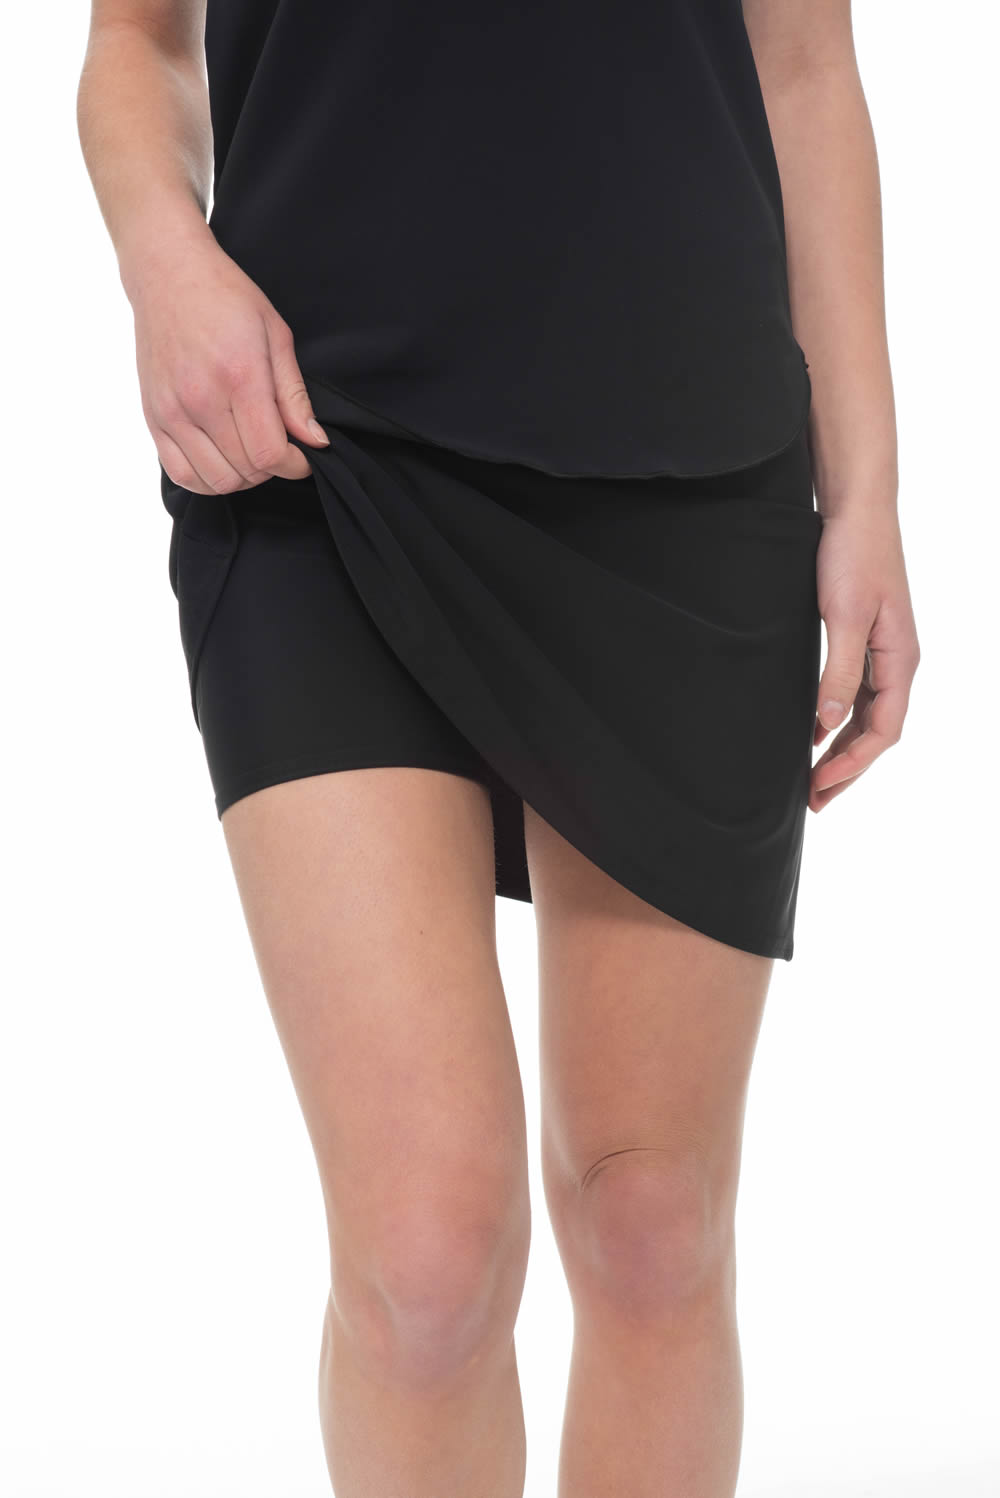 Black Mini Skirt With Shorts Attached